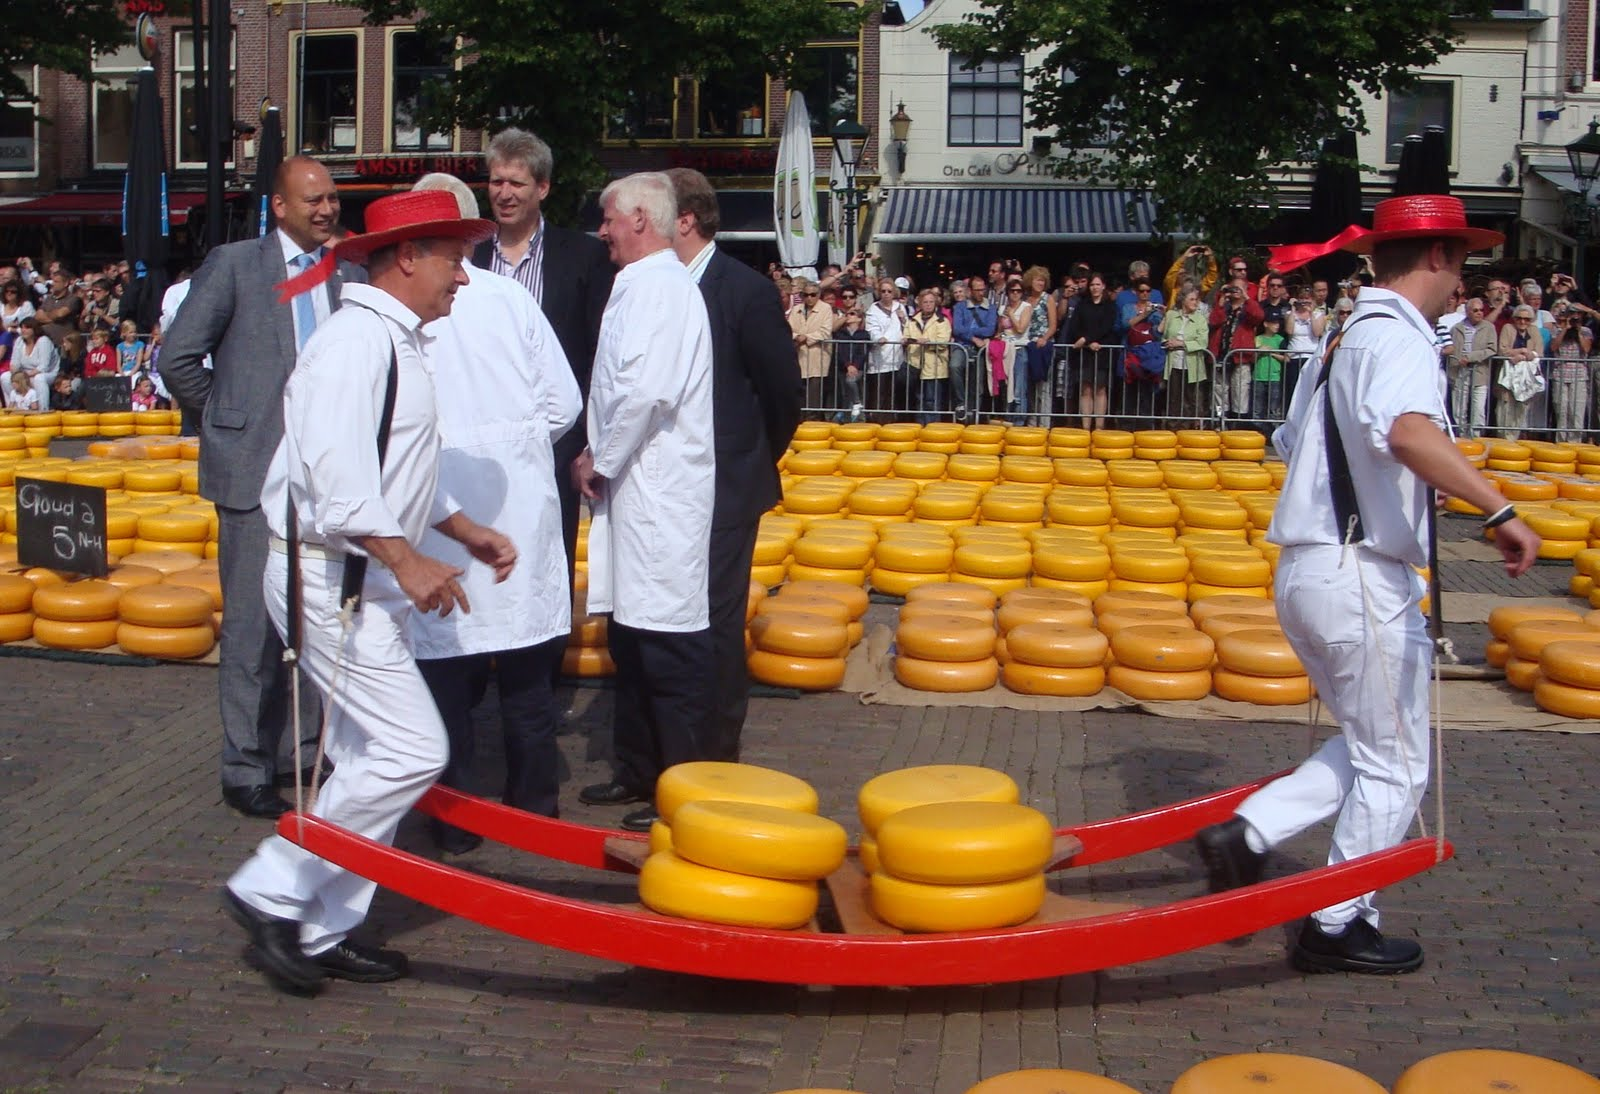 Cheese - Holland.com